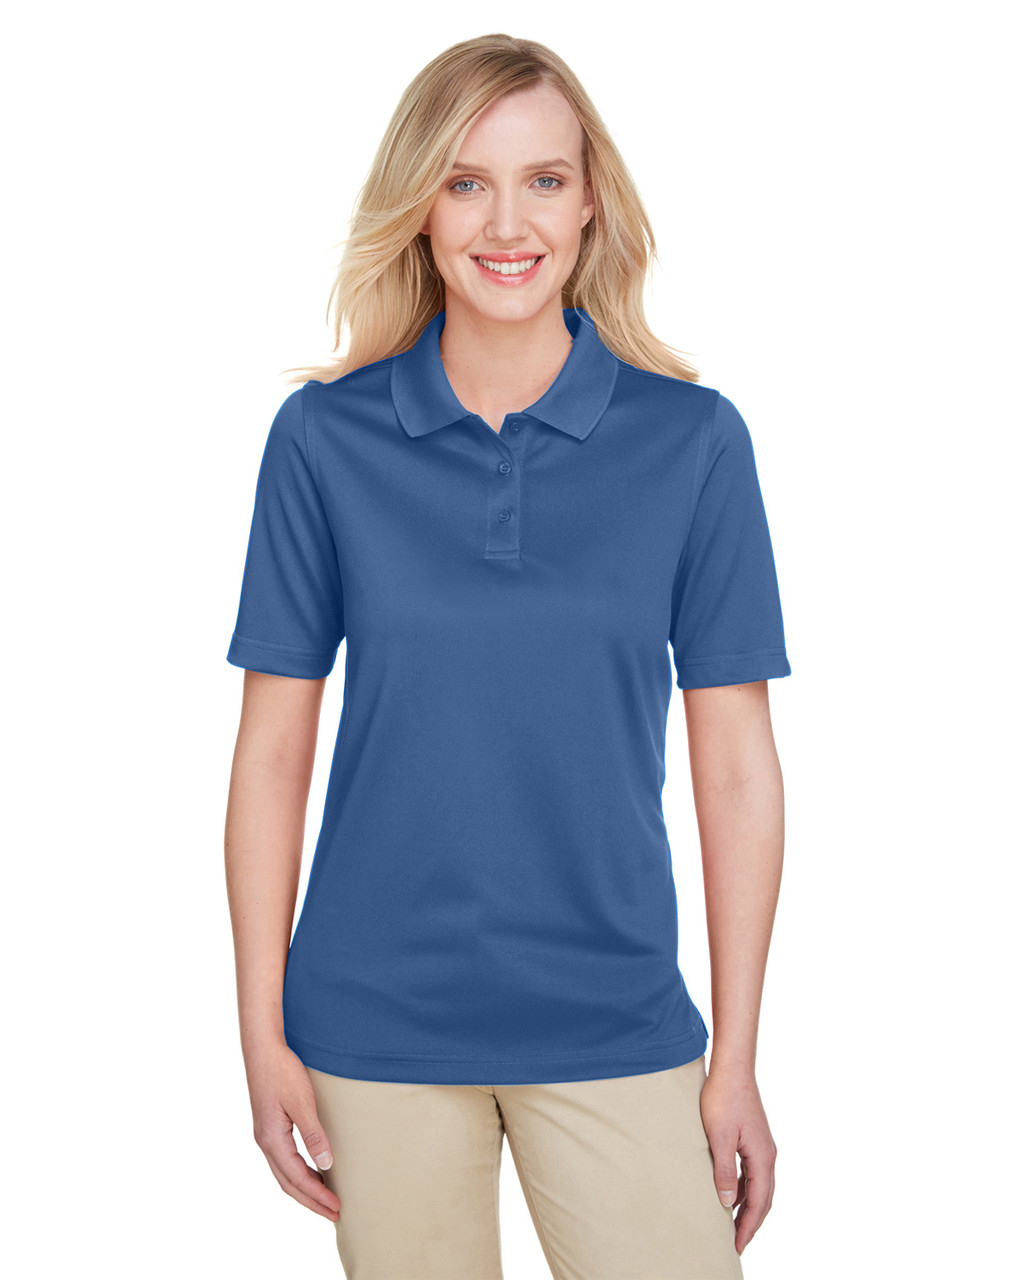 Pool Blue - M348W Harriton Ladies' Advantage Snag Protection Plus IL Polo Shirt | Blankclothing.ca